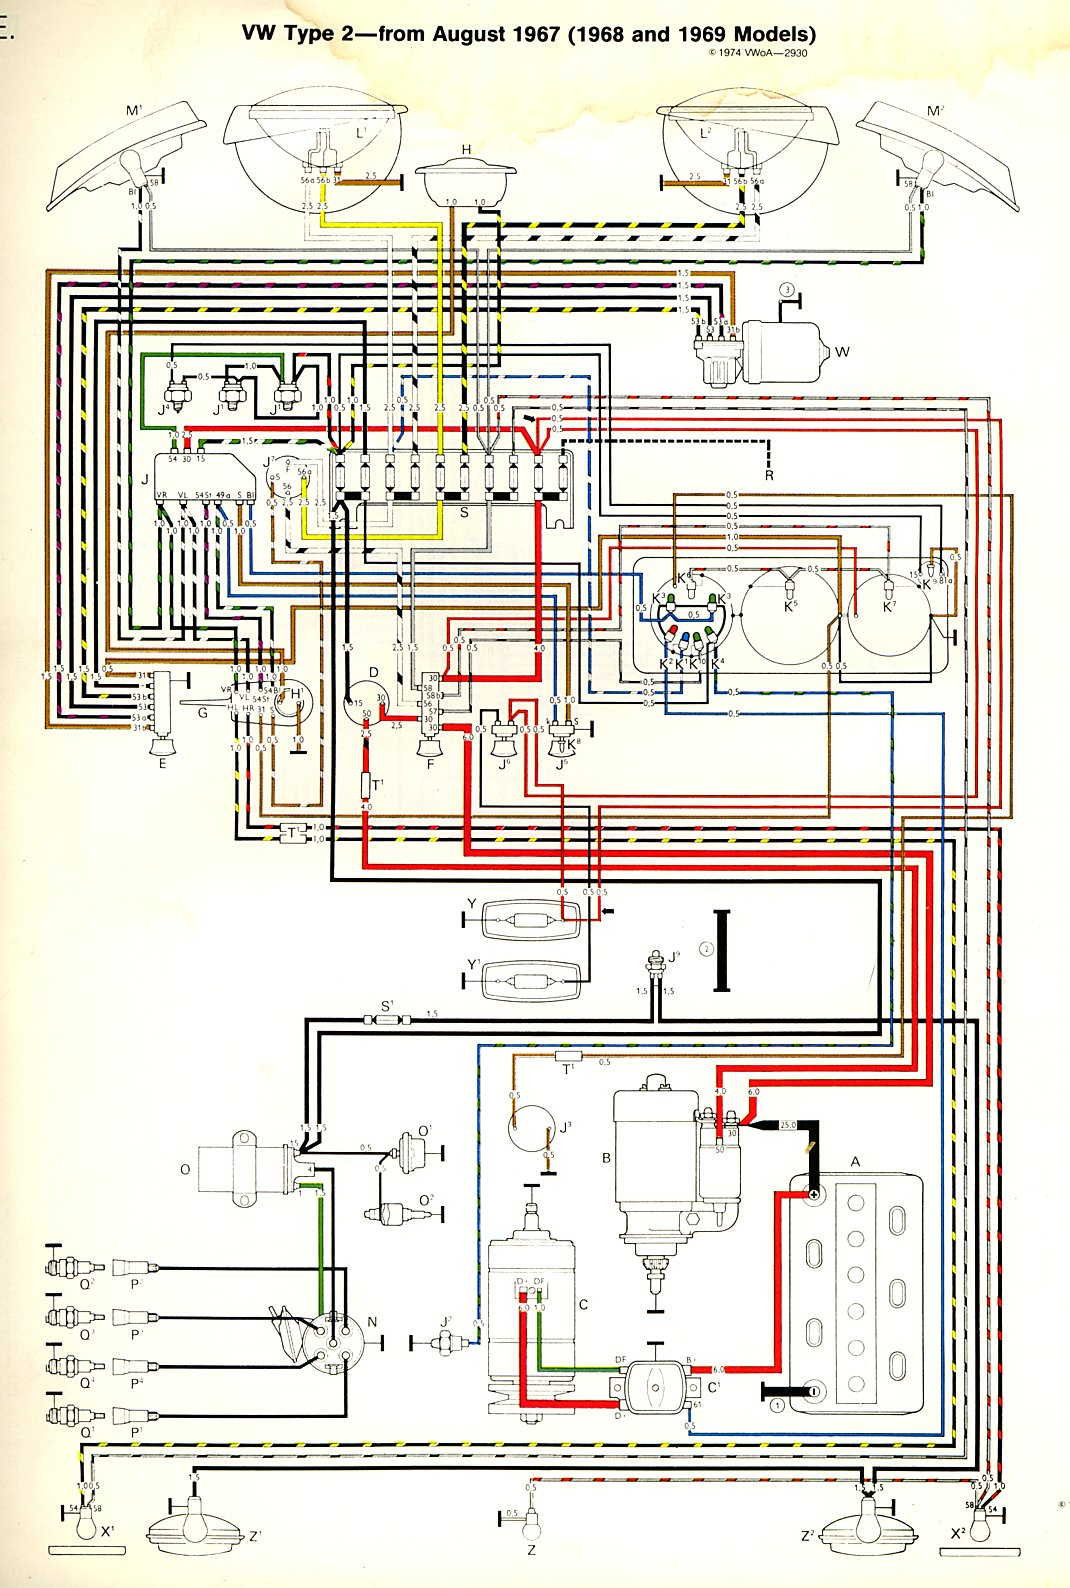 baybus_6869a 1968 69 bus wiring diagram thegoldenbug com 1971 vw bus wiring diagram at mifinder.co